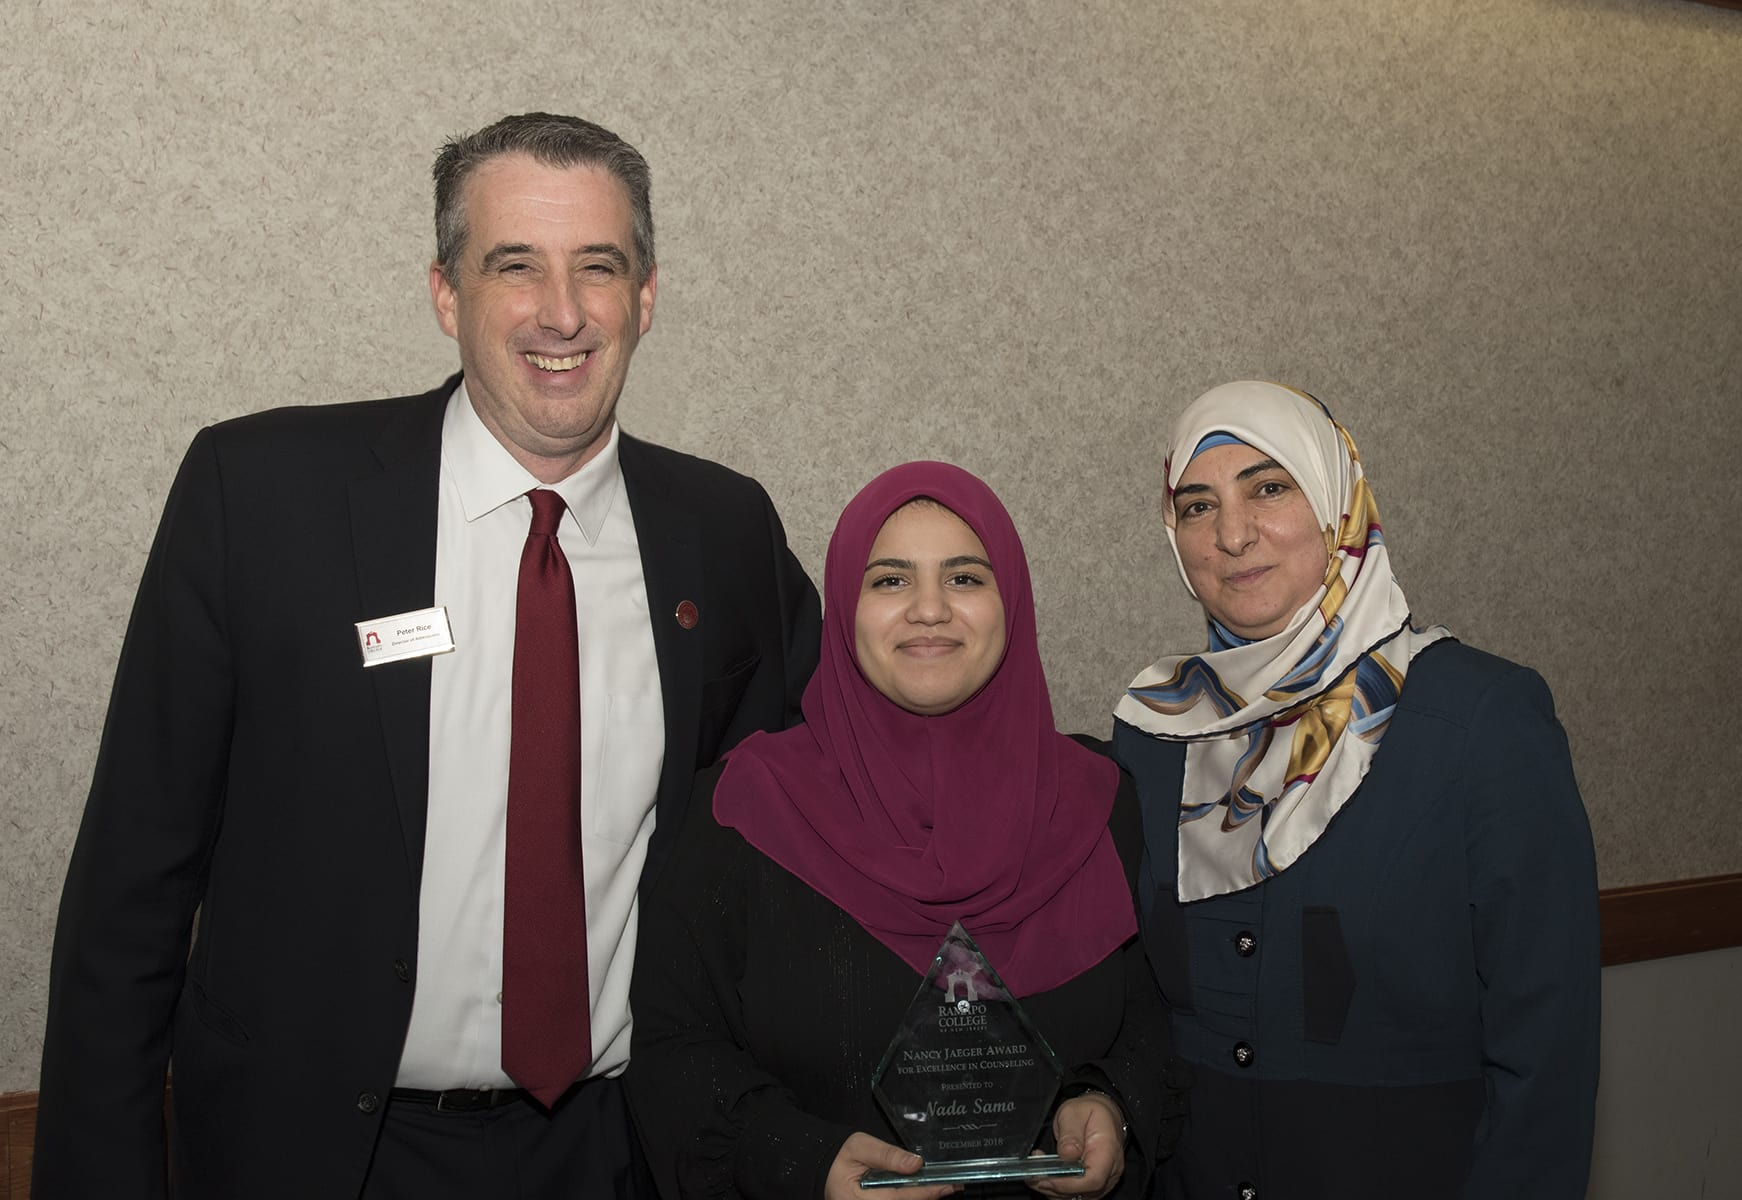 Rehab Counseling student Nada Samo holds award she received for Excellence in Counseling